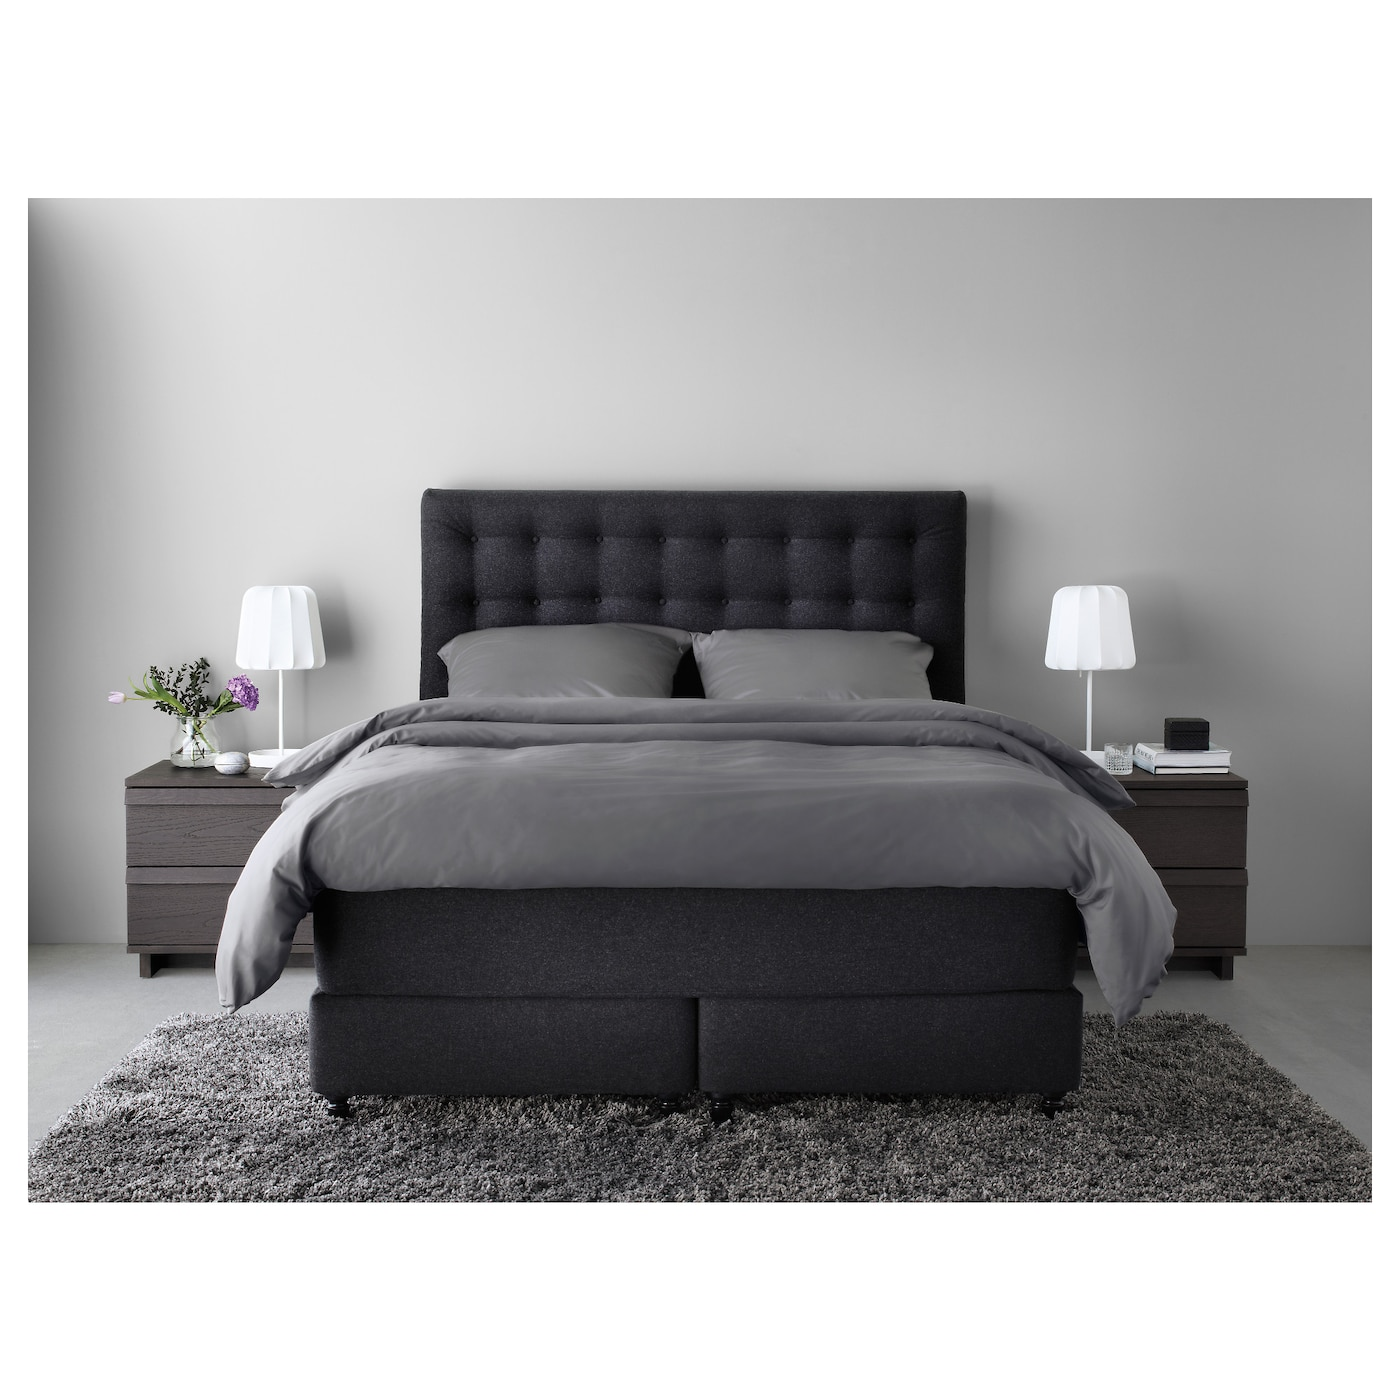 vallavik lit sommier hyllestad ferme tustna gris 180x200. Black Bedroom Furniture Sets. Home Design Ideas